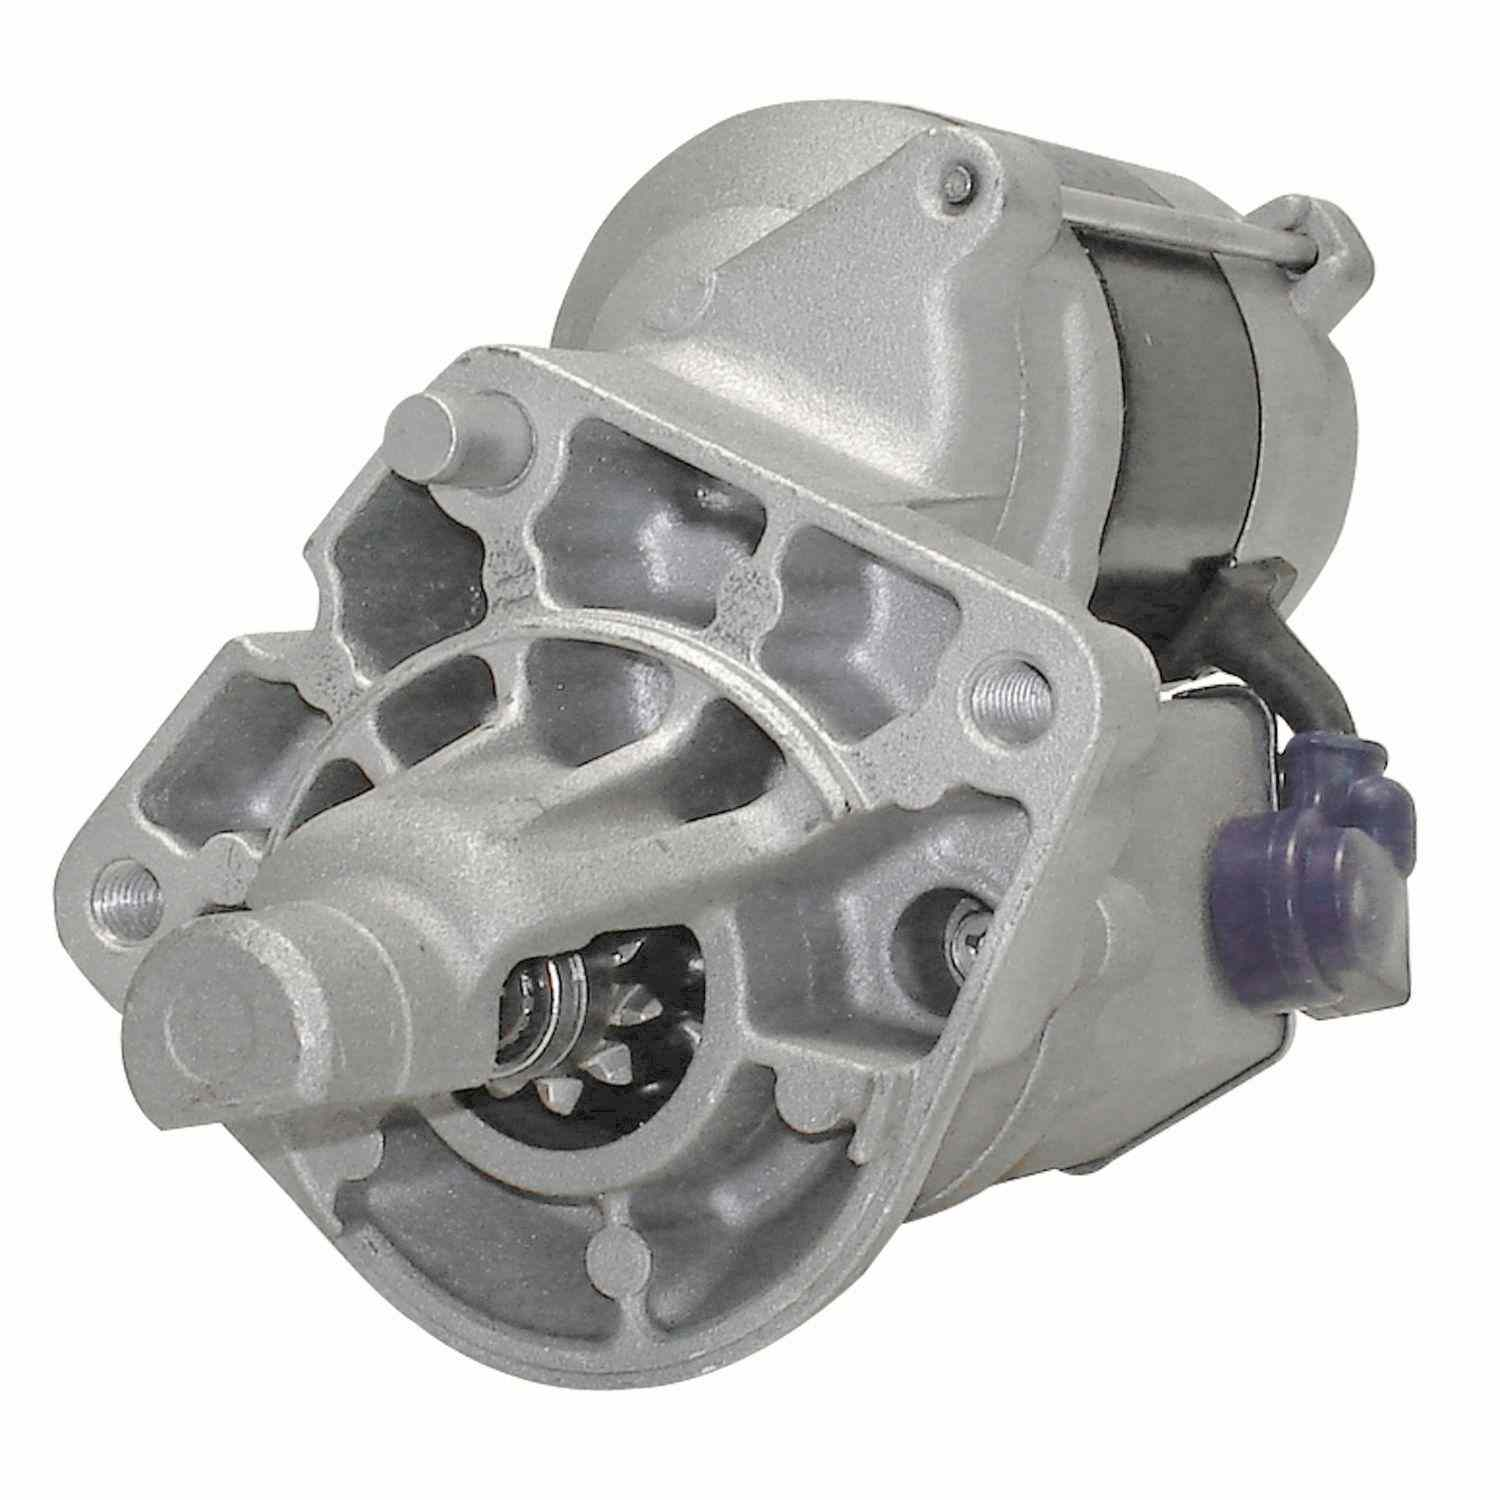 ACDELCO PROFESSIONAL - Reman Starter Motor - DCC 336-1577A